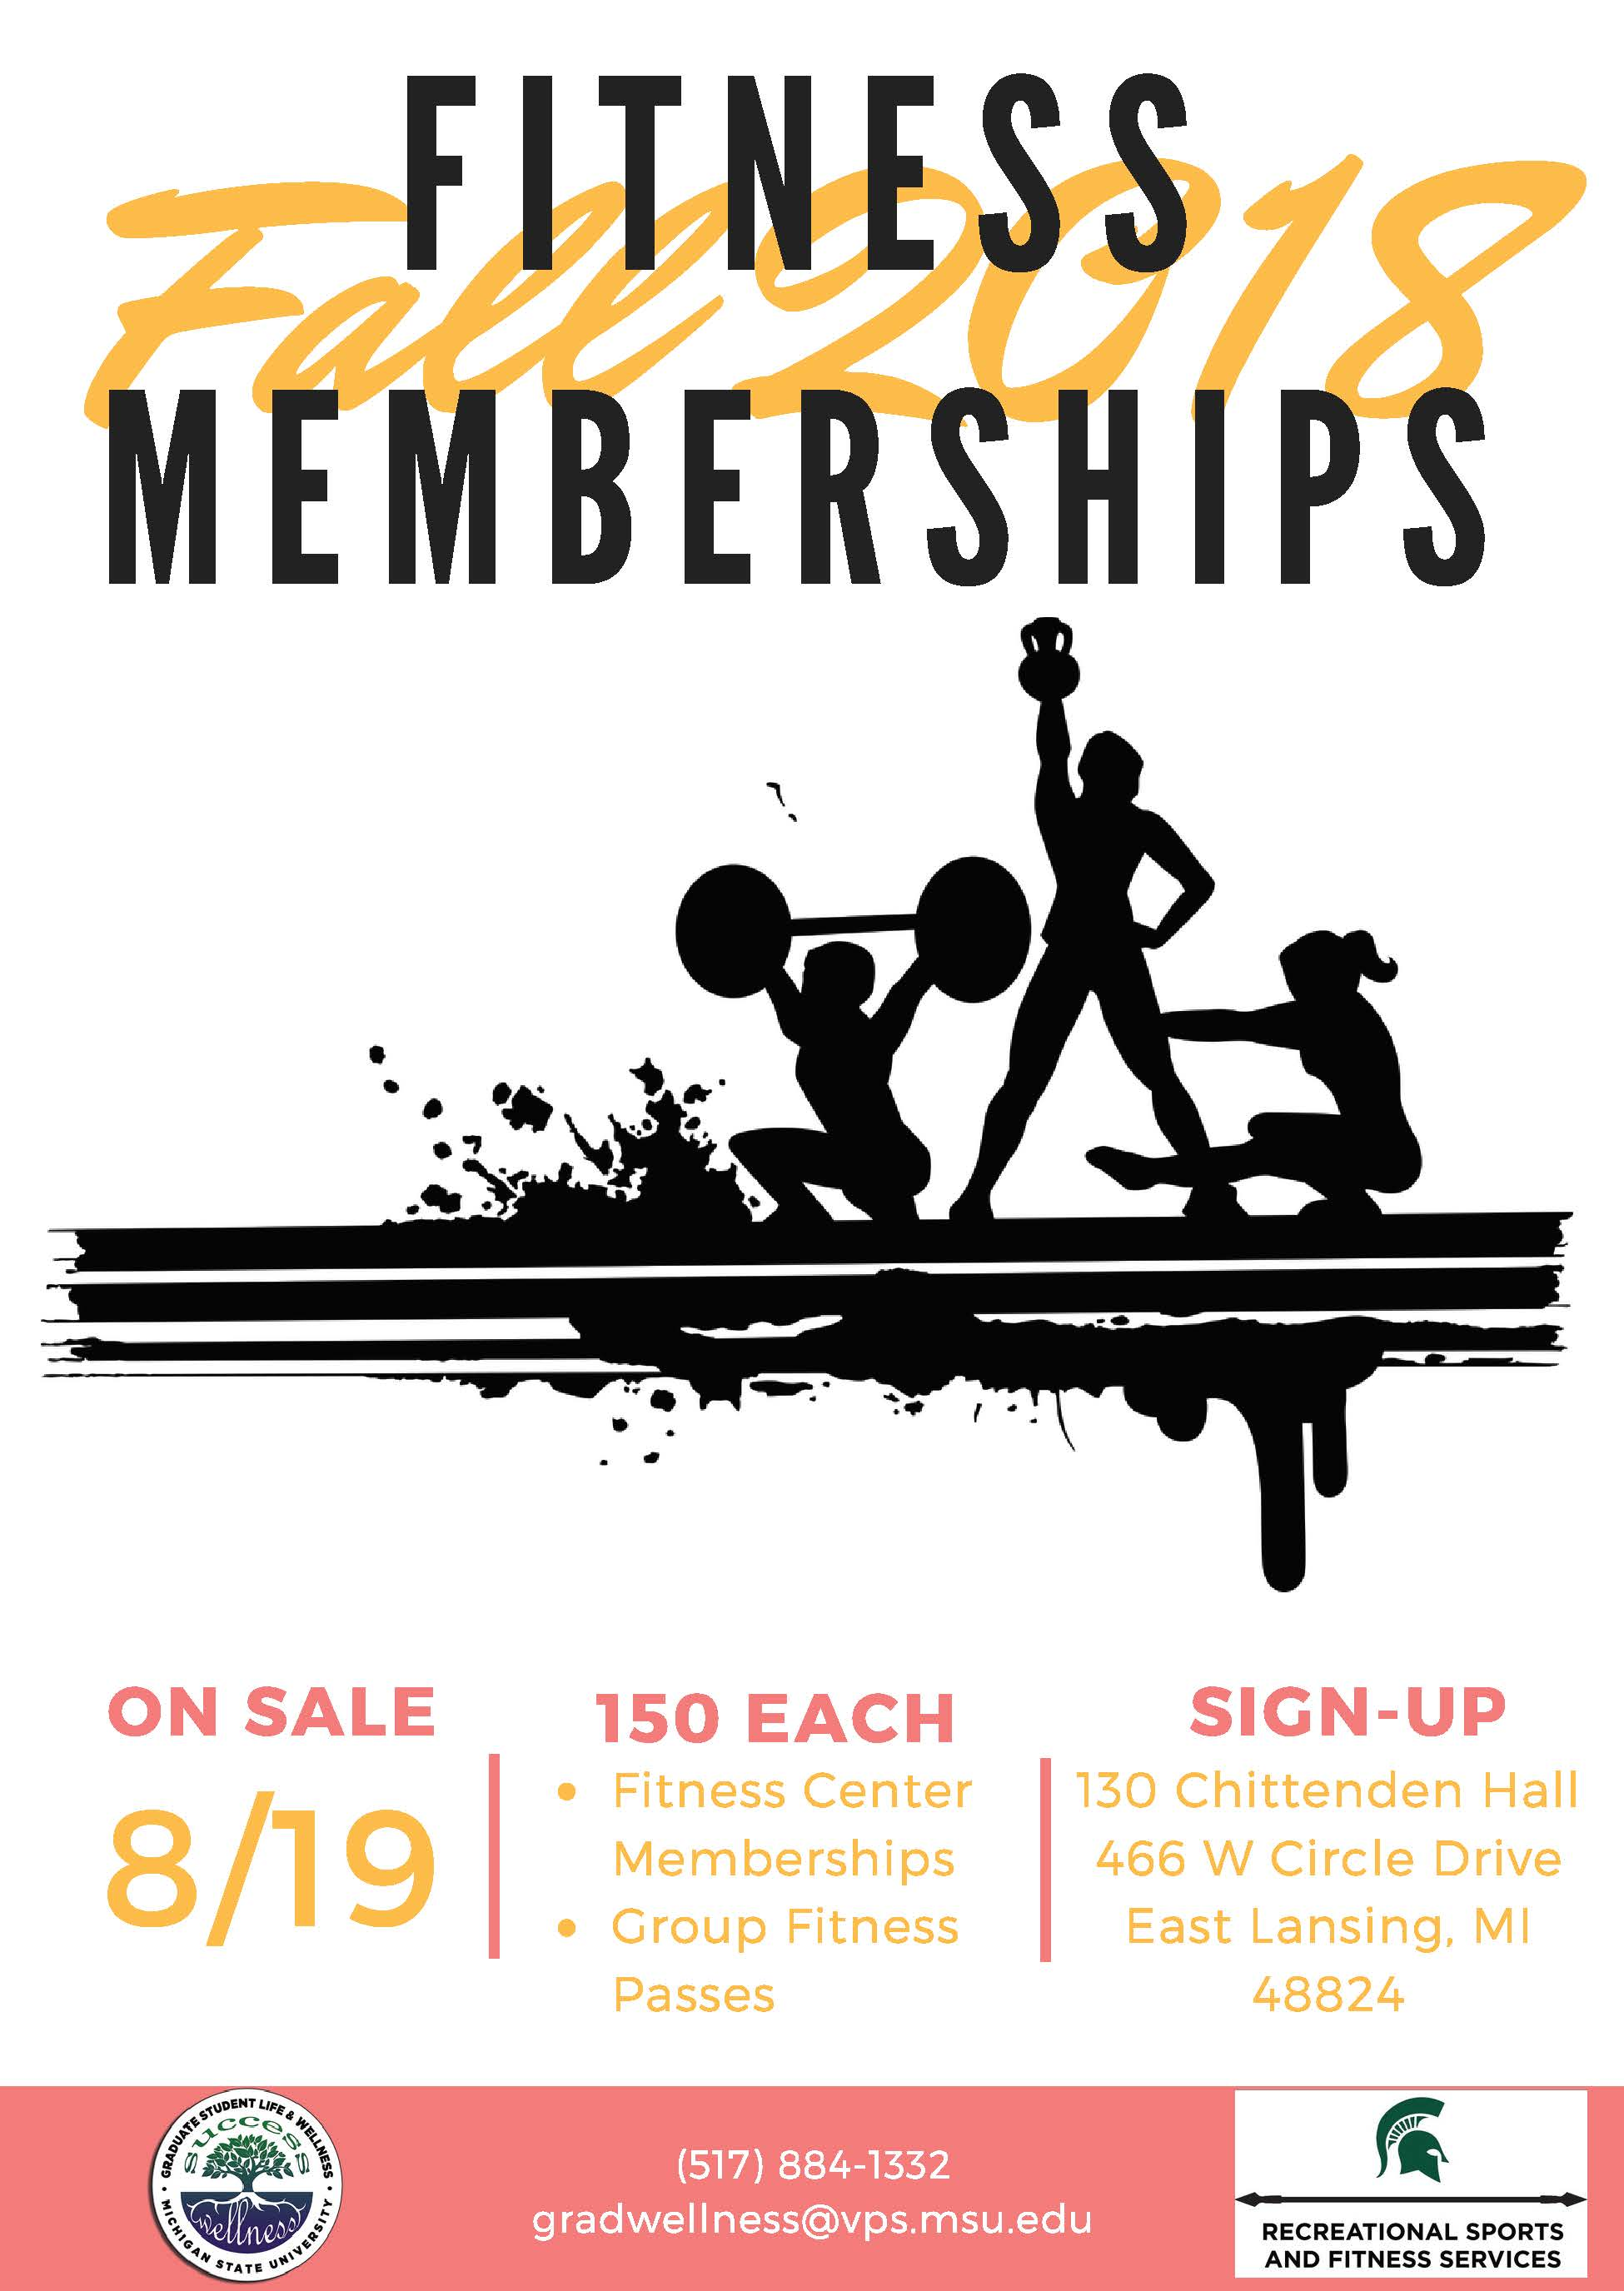 50% Off Fitness Center and Group Fitness Passes for Graduate Students